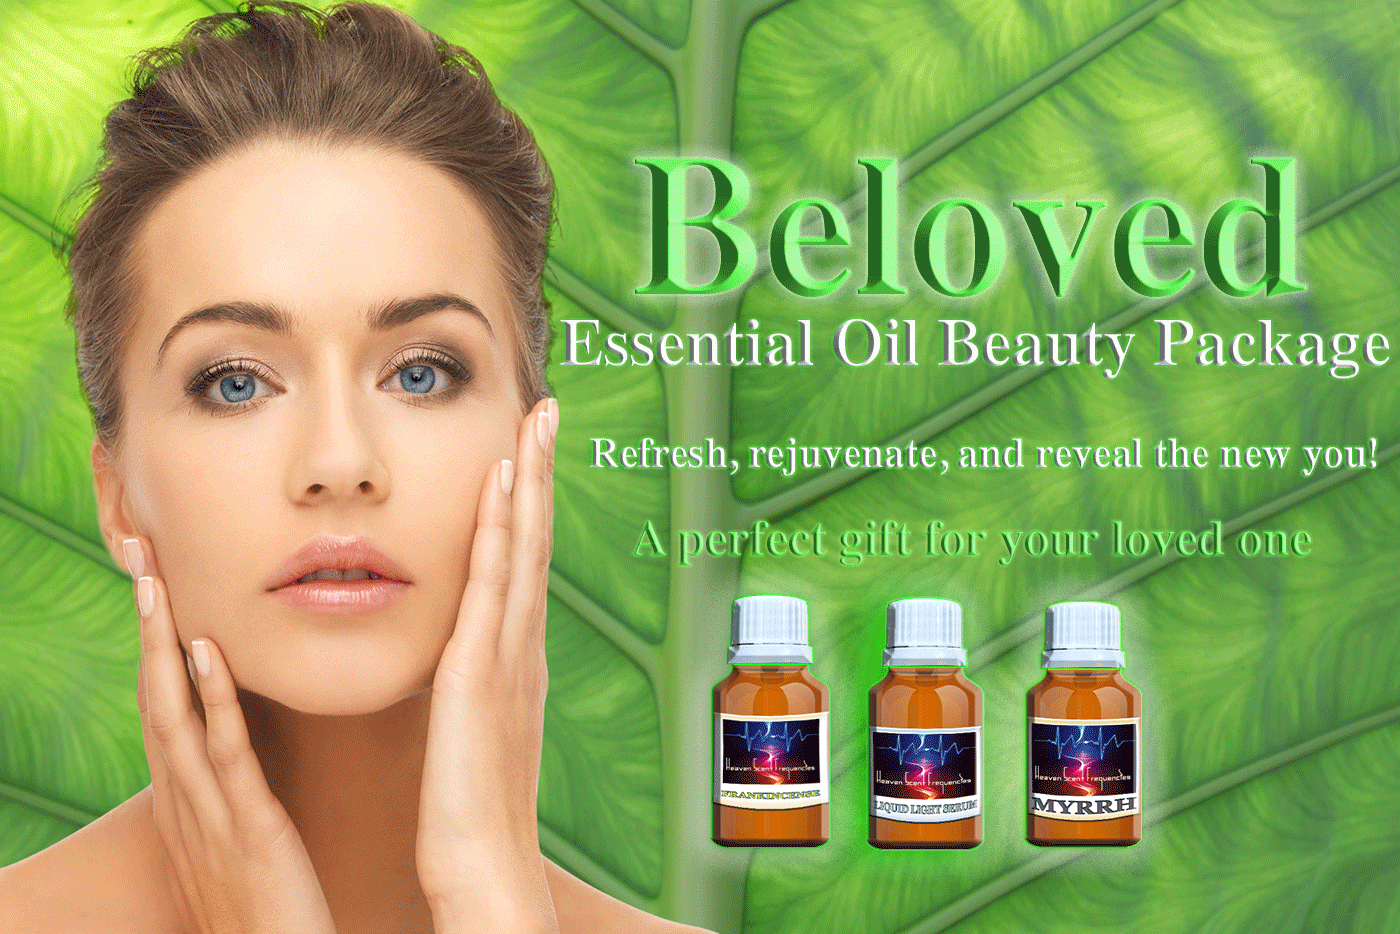 1400x934 BANNER English - Beloved Essential Oil Beauty Package